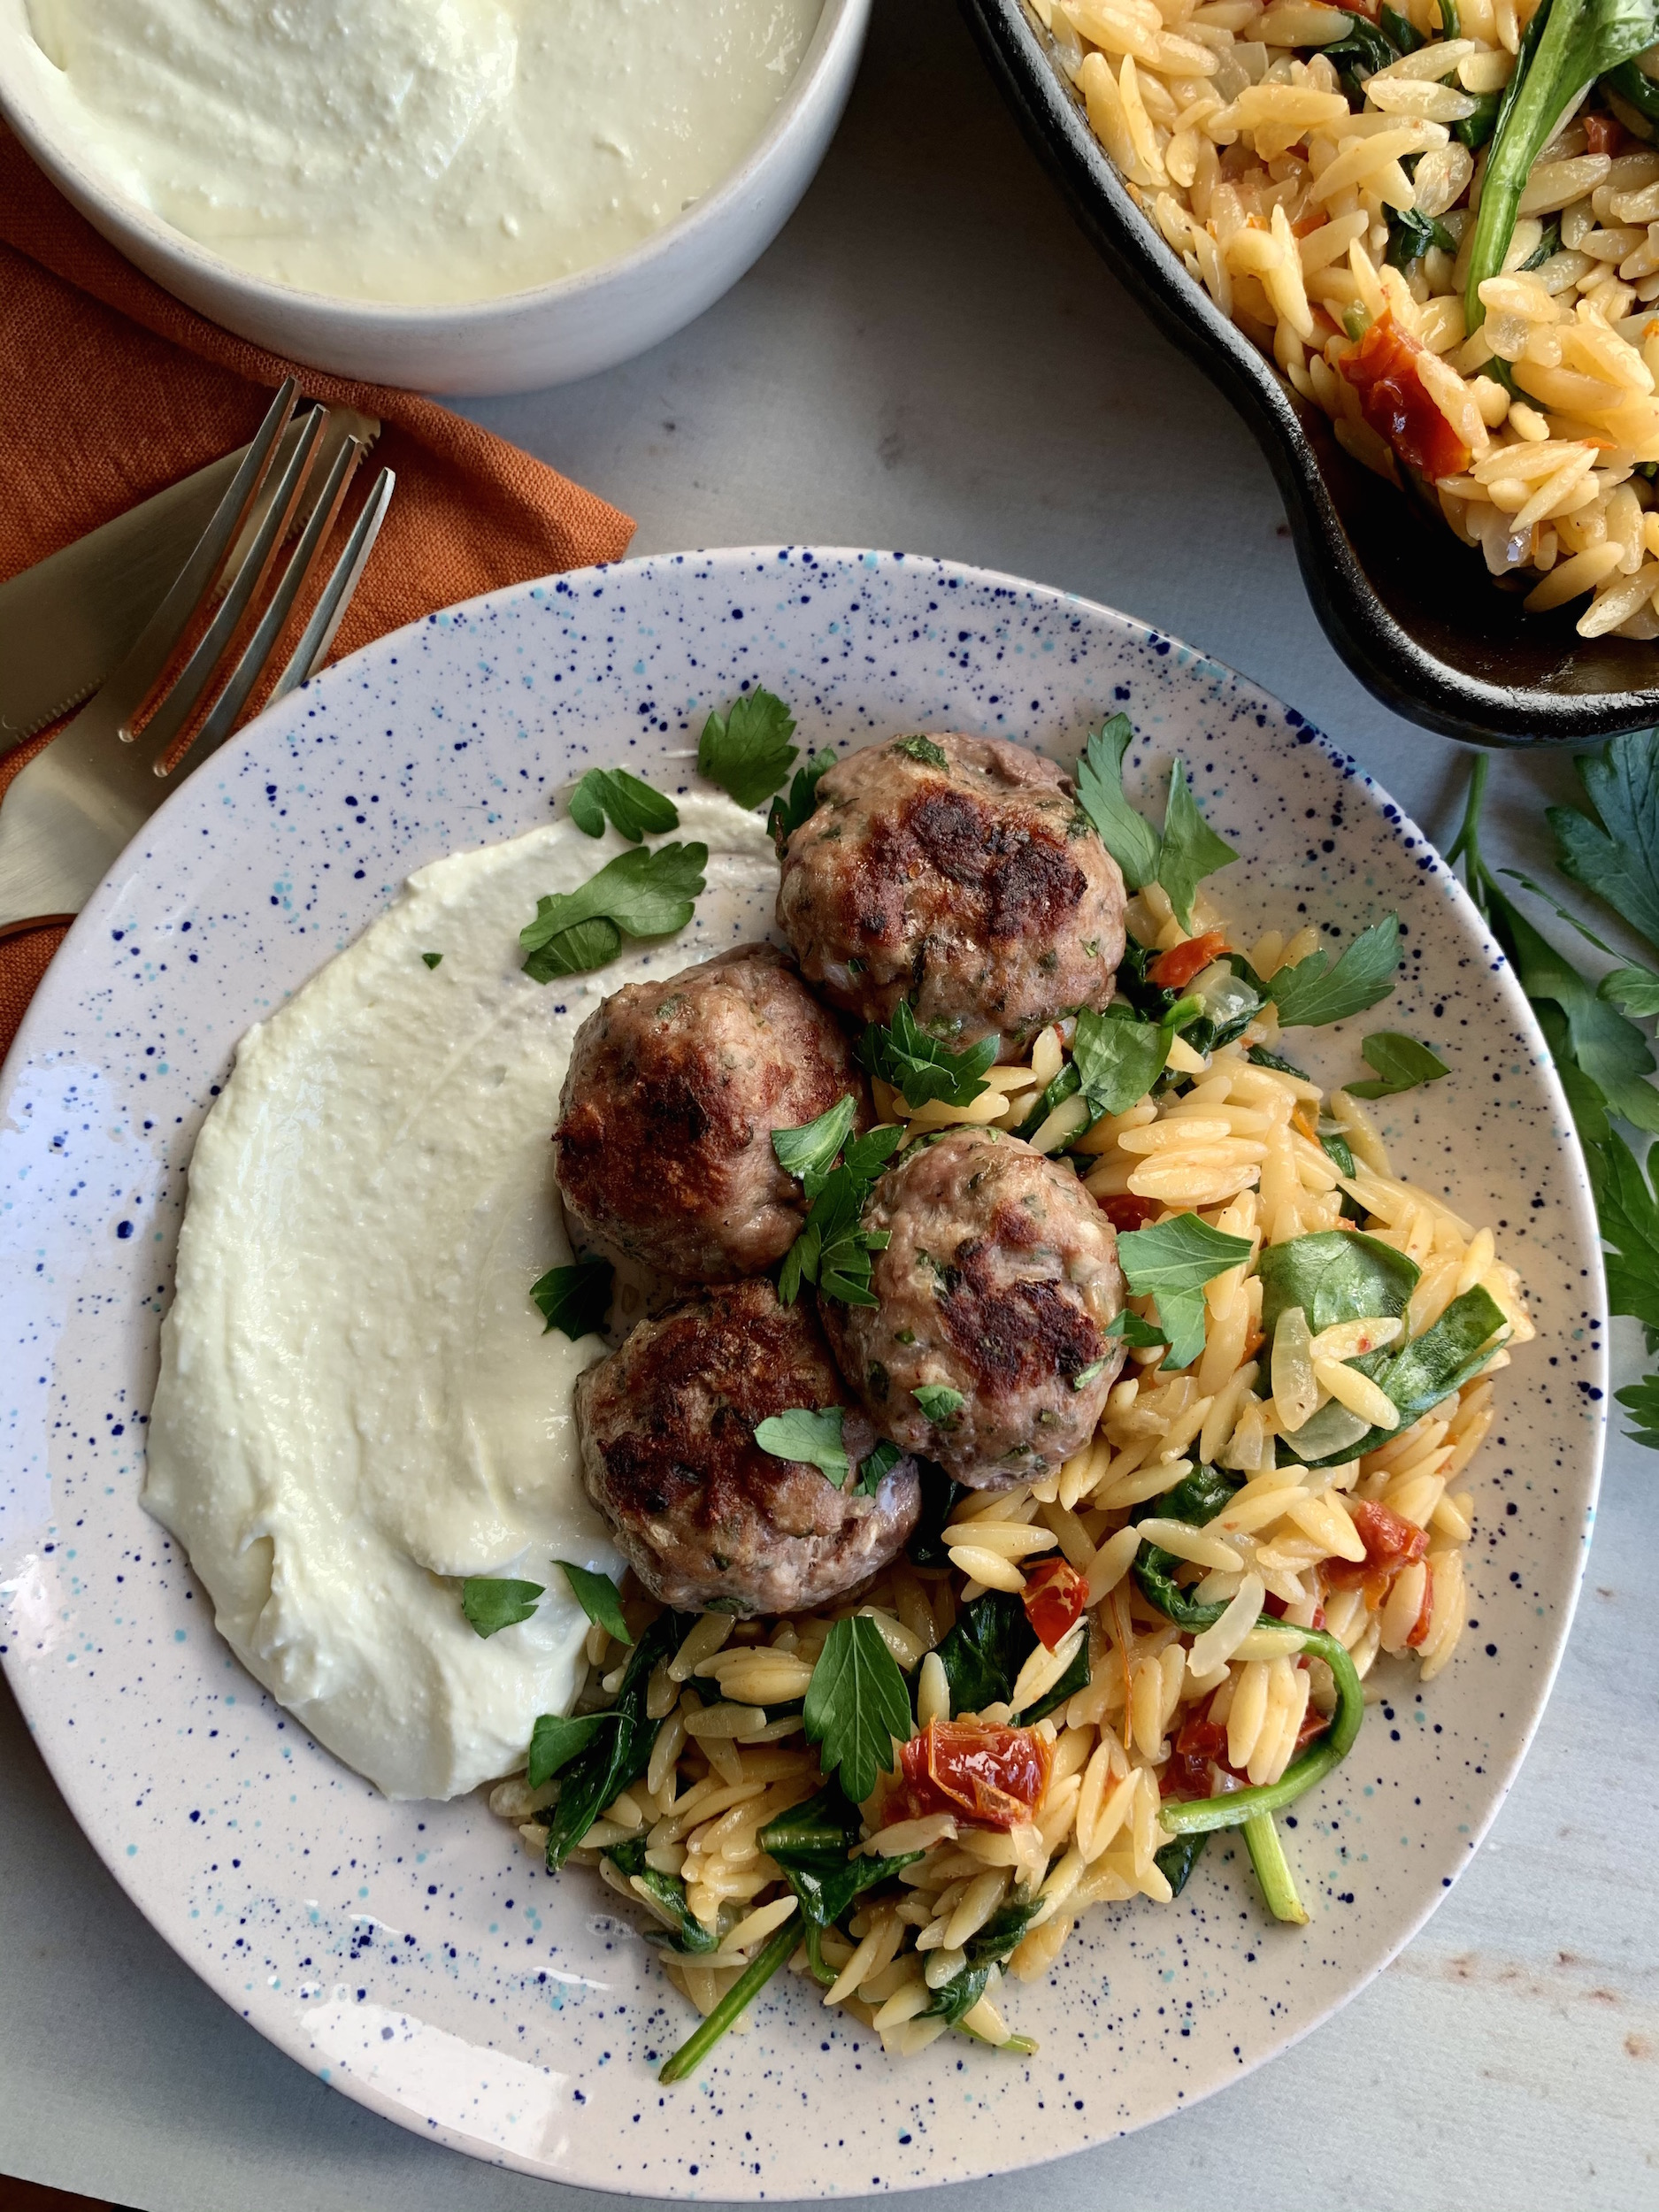 Speckled plate with whipped feta, greek meatballs on a bed of orzo, sprinkled with fresh herbs.